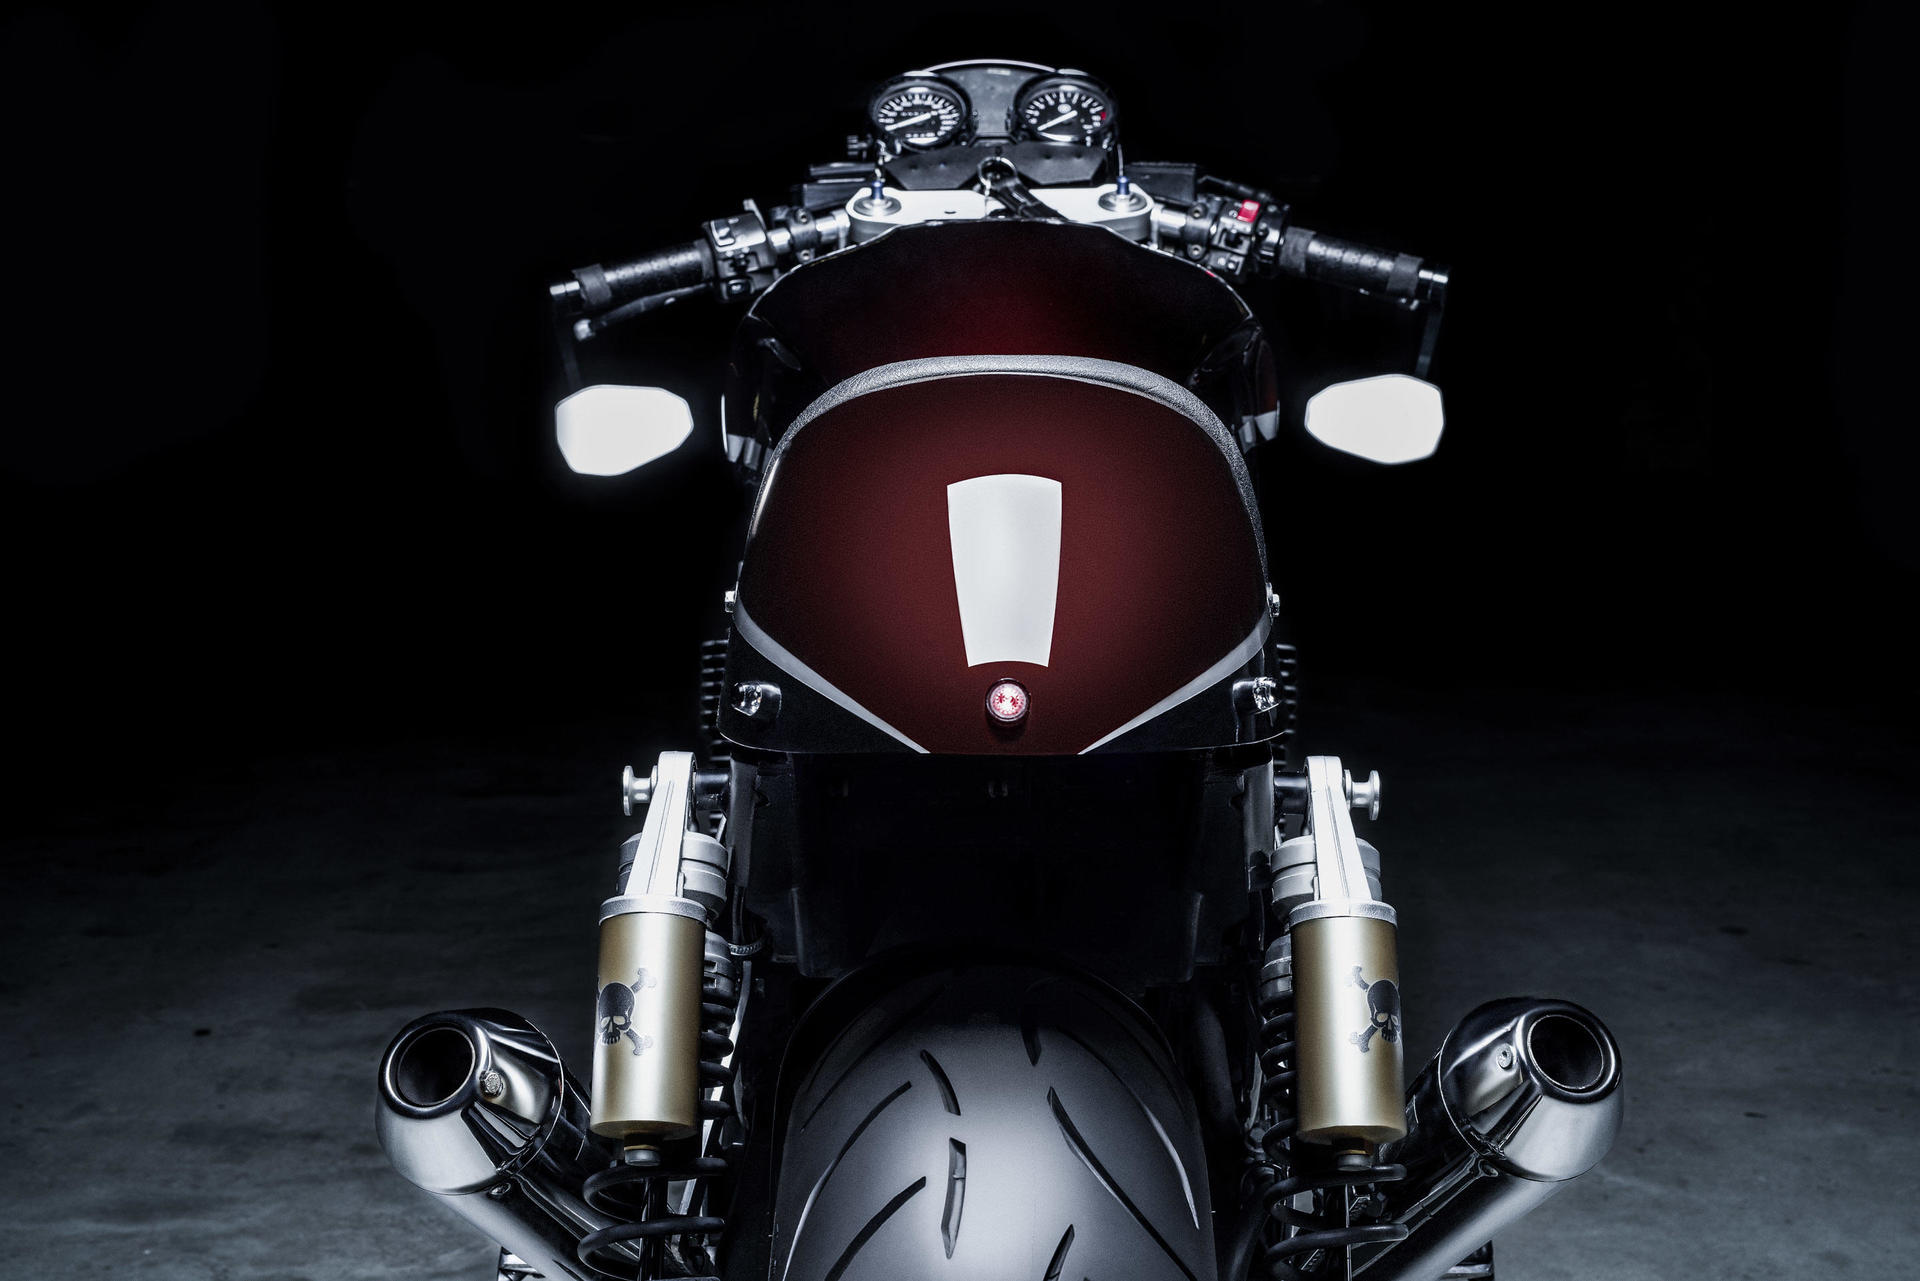 bertolini-photo-yamaha-xrj-1300-4